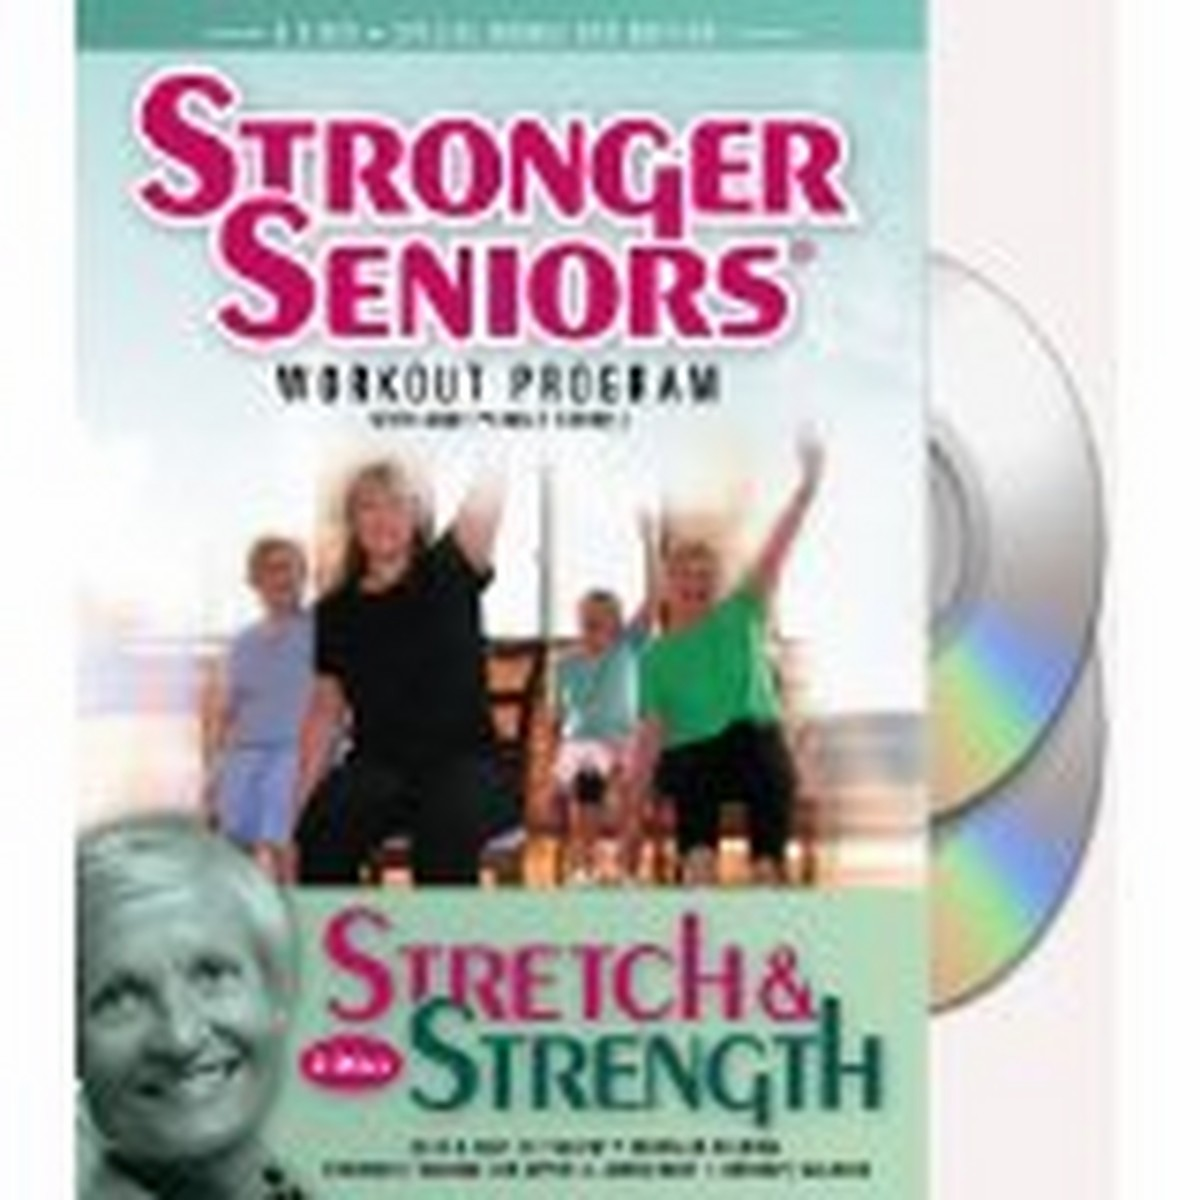 Balance and Stretching Exercises for Seniors and the Physically Less Active to Keep Fit